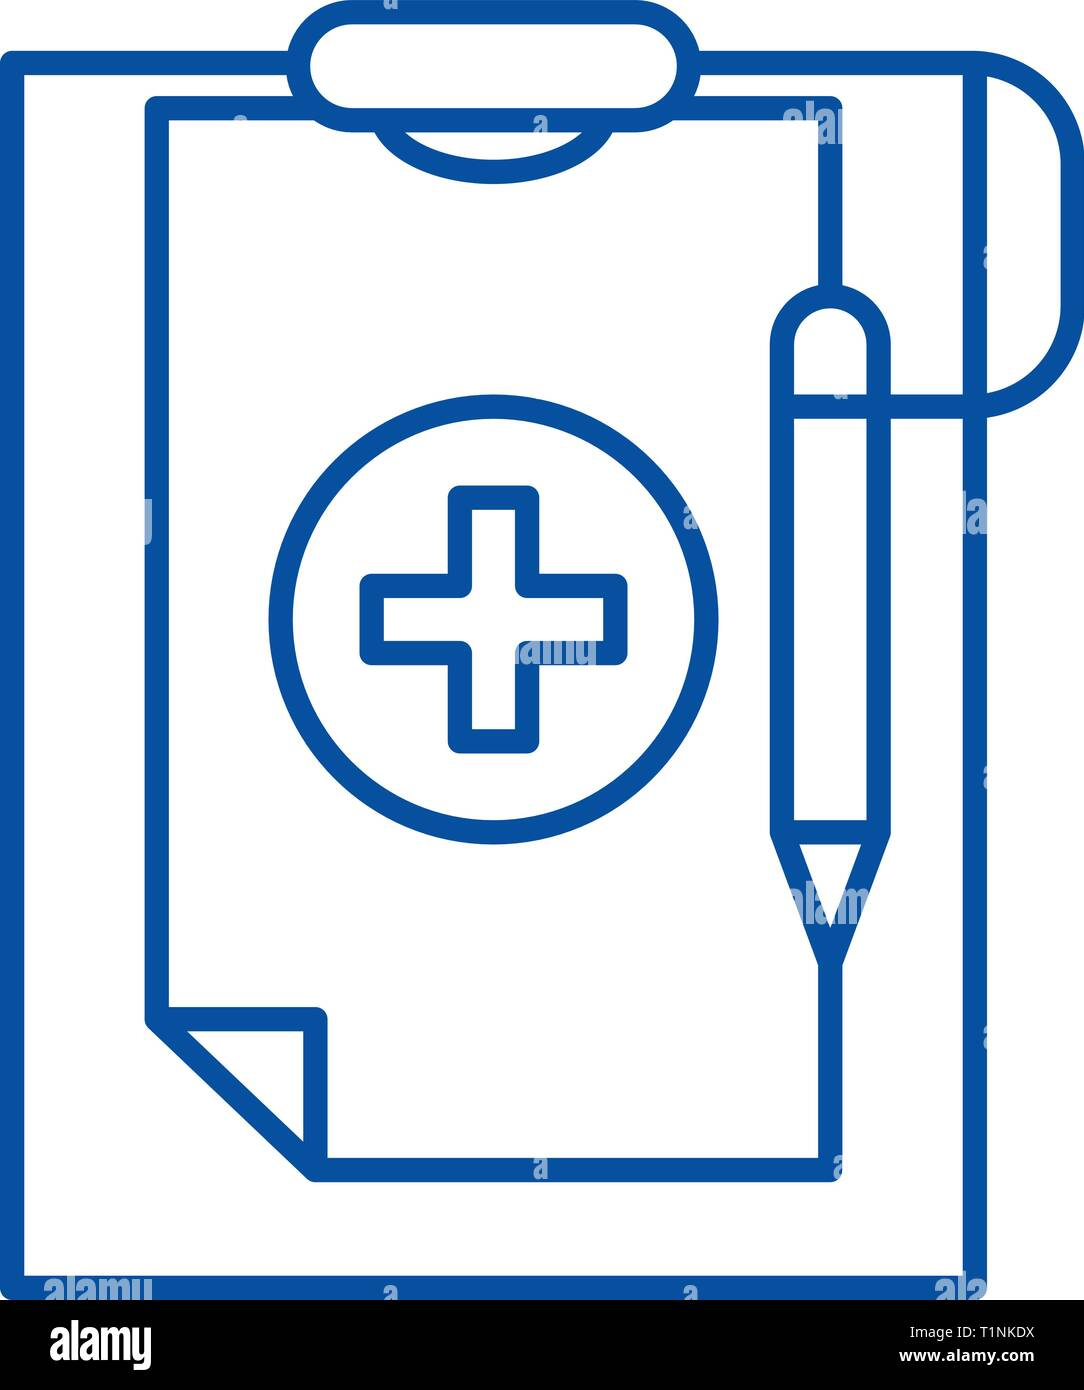 Medical diagnosis line icon concept. Medical diagnosis flat  vector symbol, sign, outline illustration. - Stock Image